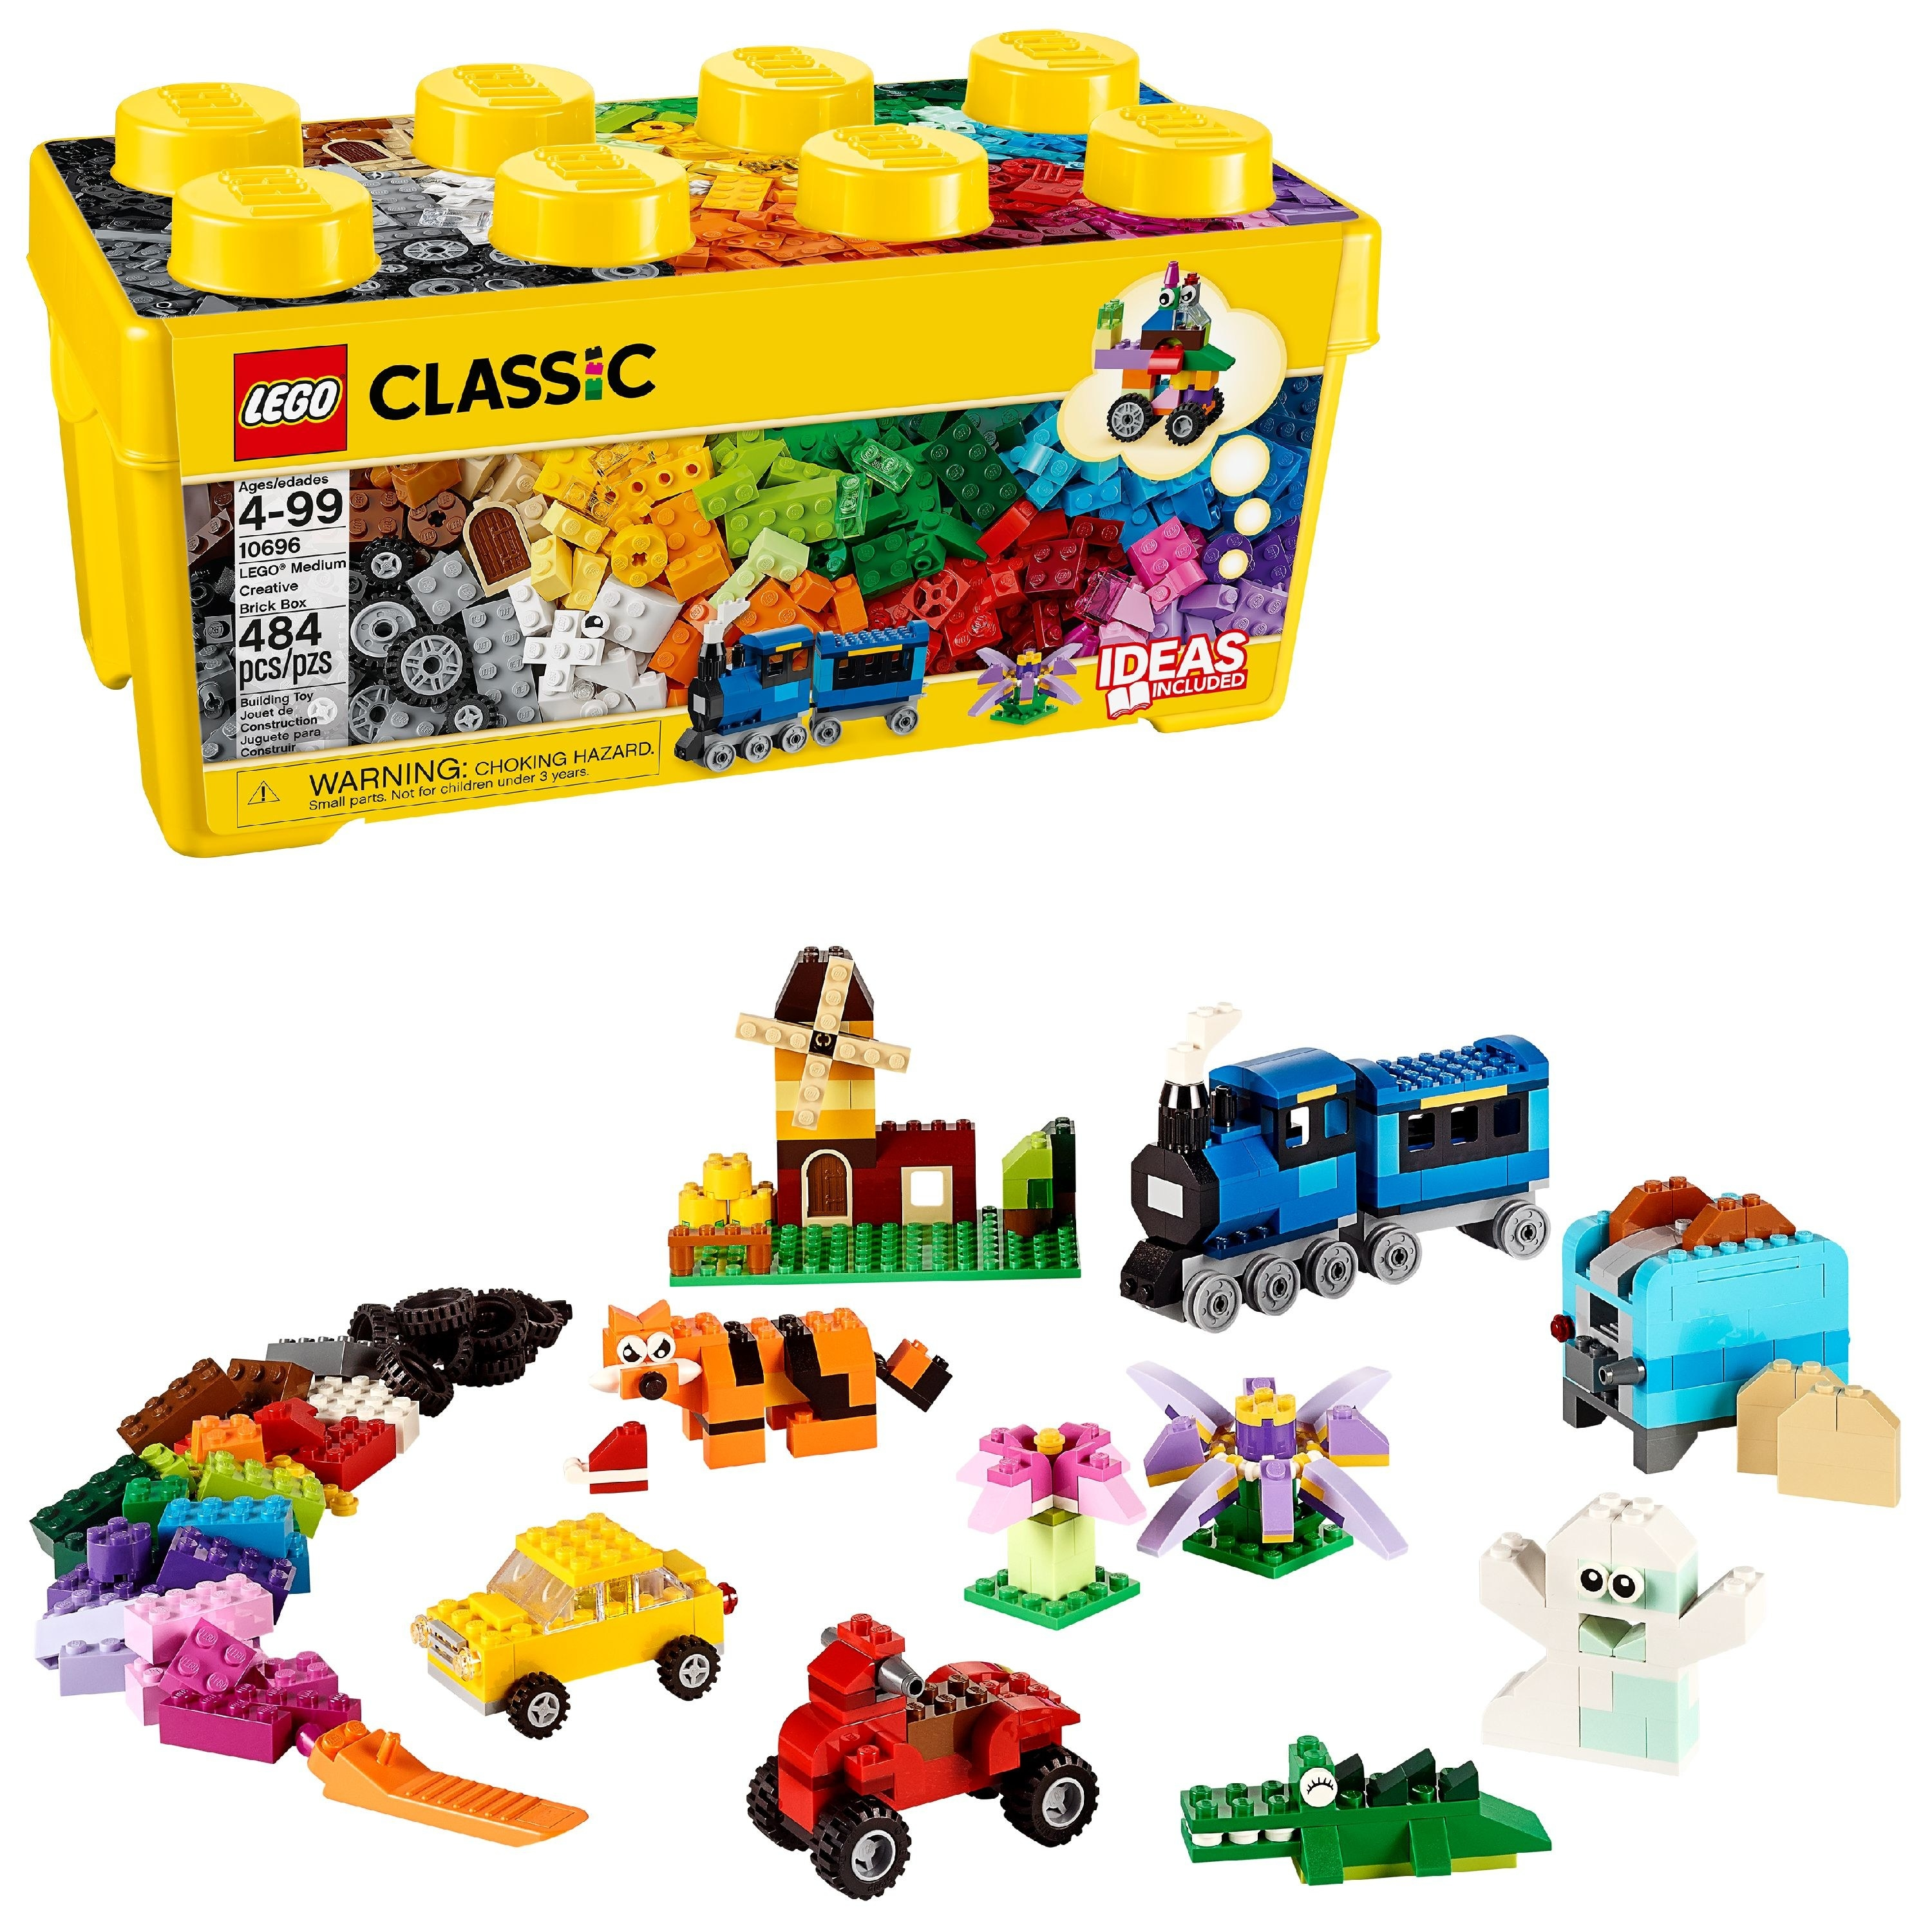 The yellow brick-shaped box and an assortment of colorful bricks